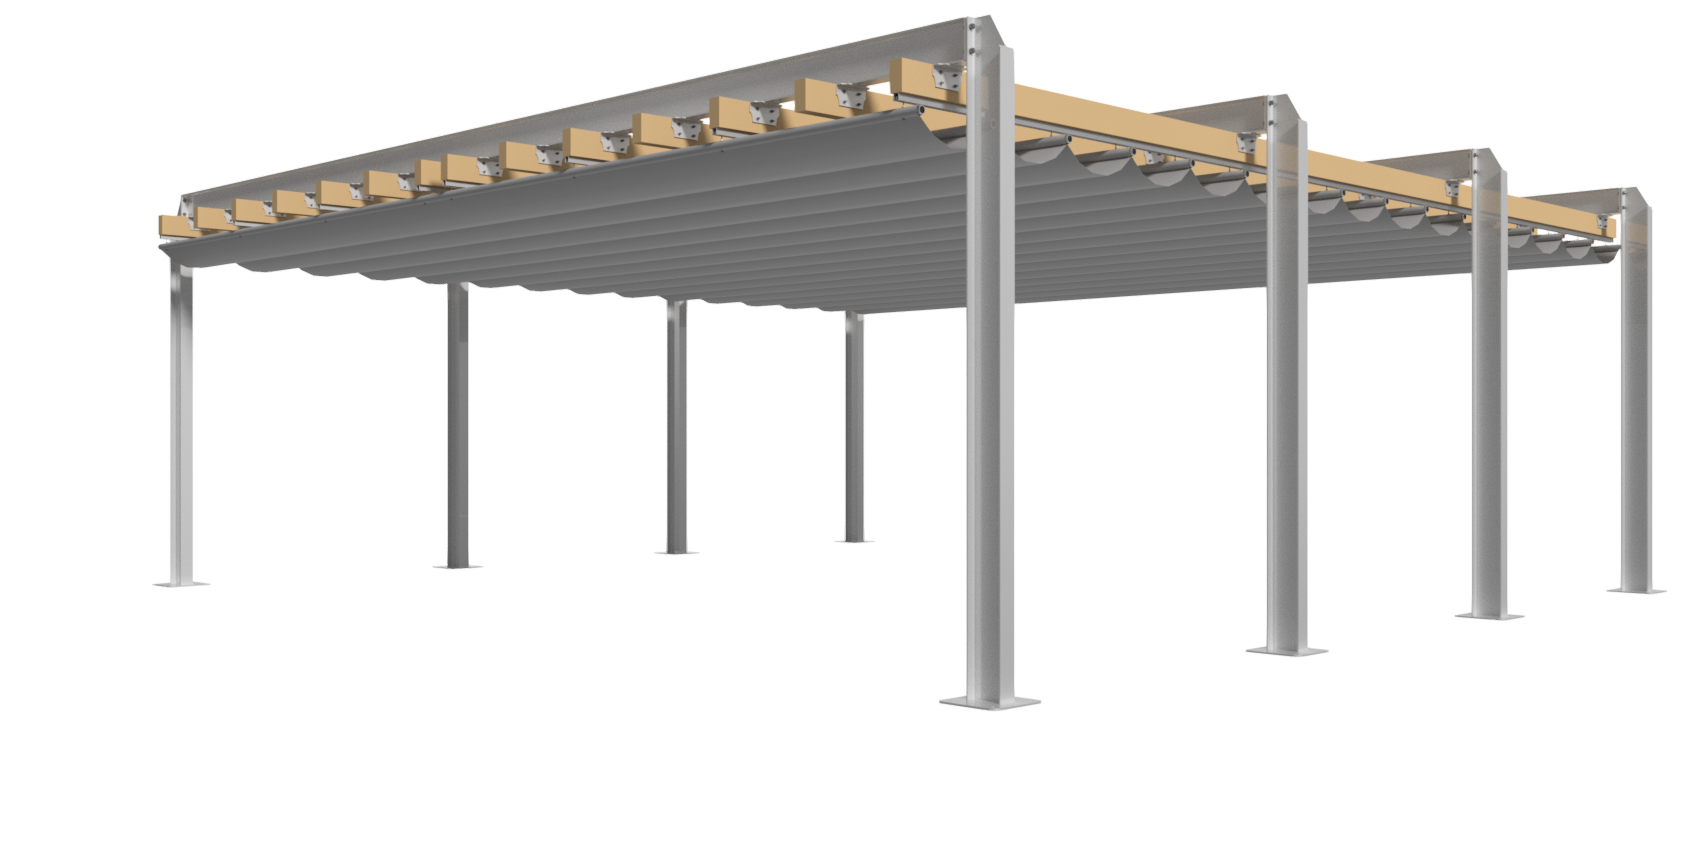 Retractable Pergola - Isometric View